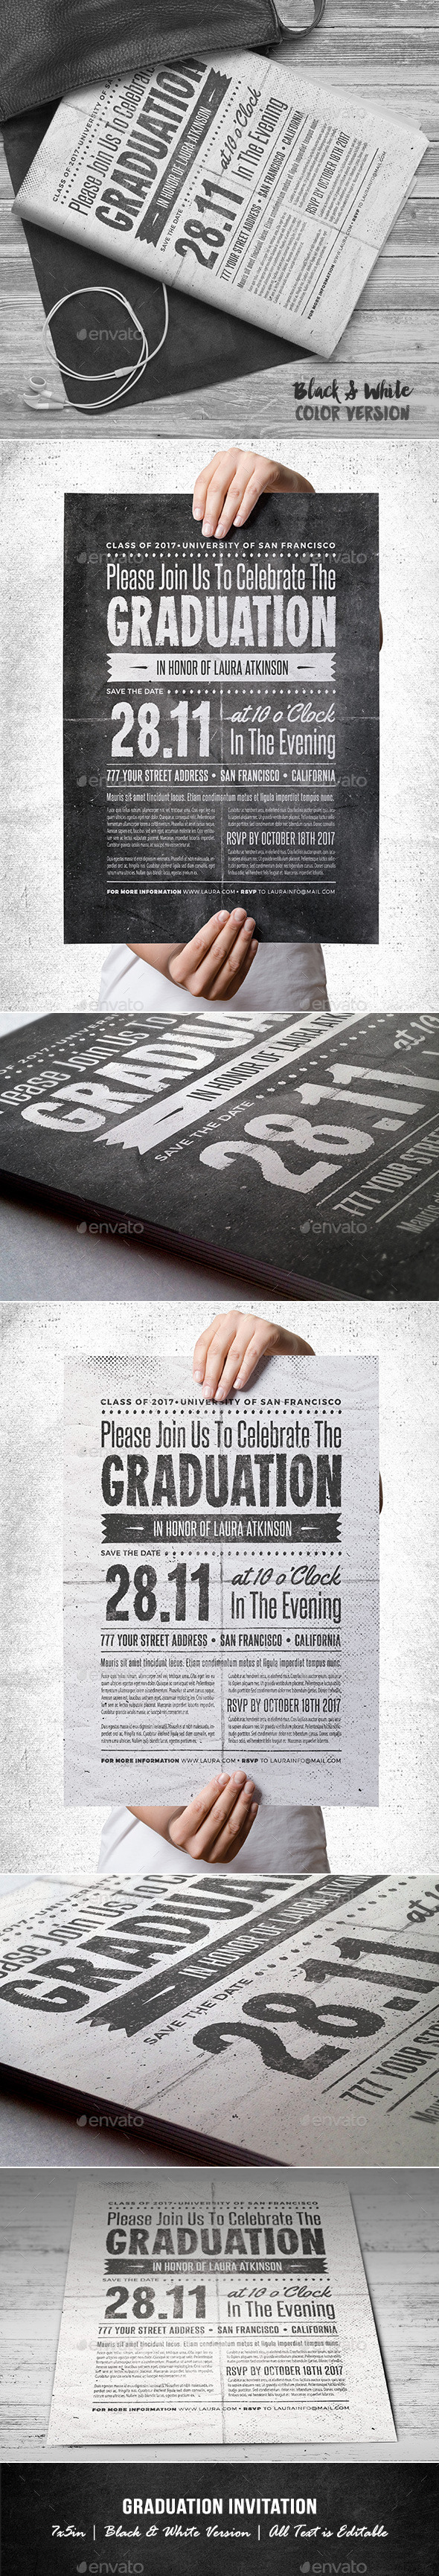 GraphicRiver Graduation Invitation B&W 11529692